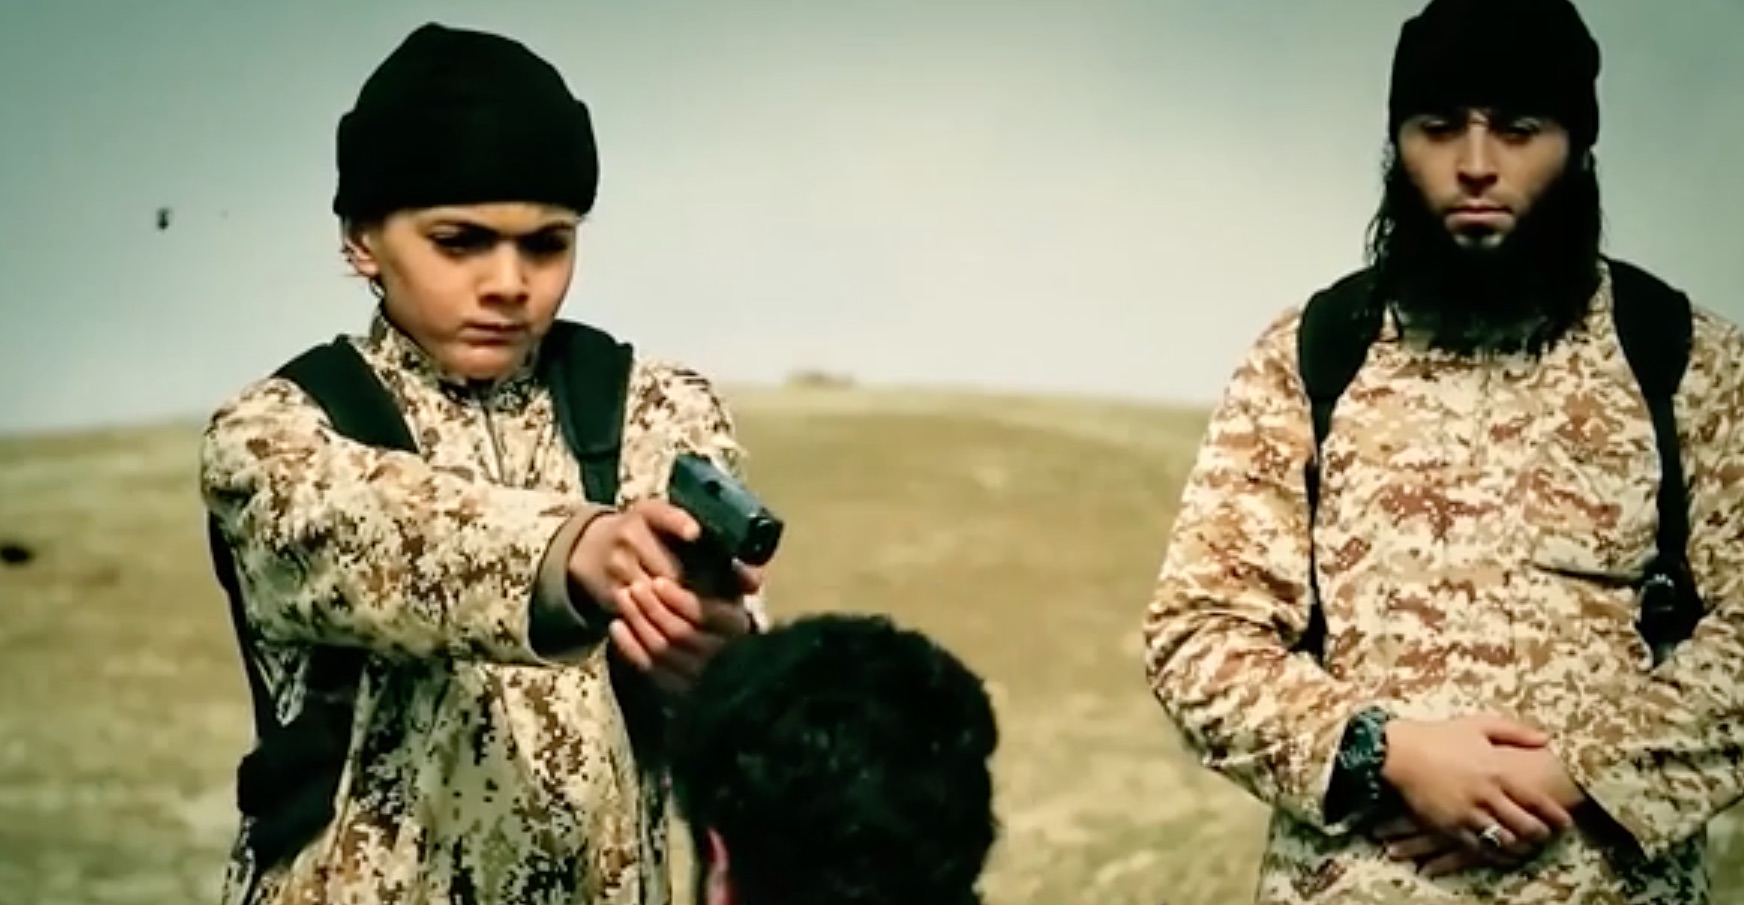 The 10-minute ISIS propaganda video includes a number of scenes of children brandishing handguns and shooting ISIS prisoners. [FILE]